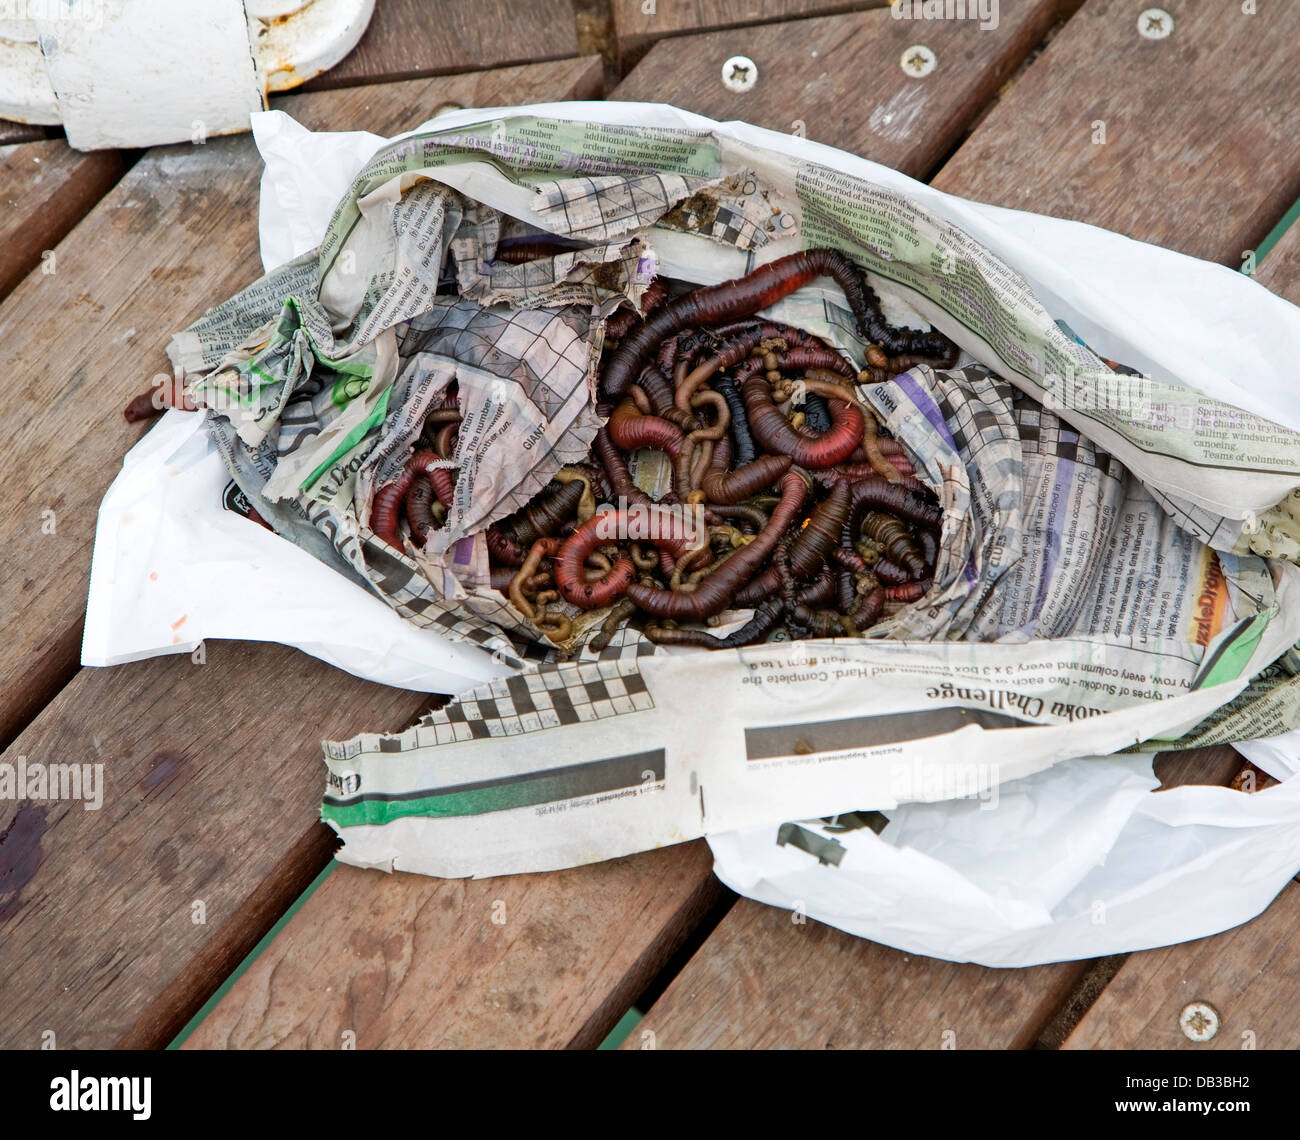 Lug worms wriggling in newspaper - Stock Image